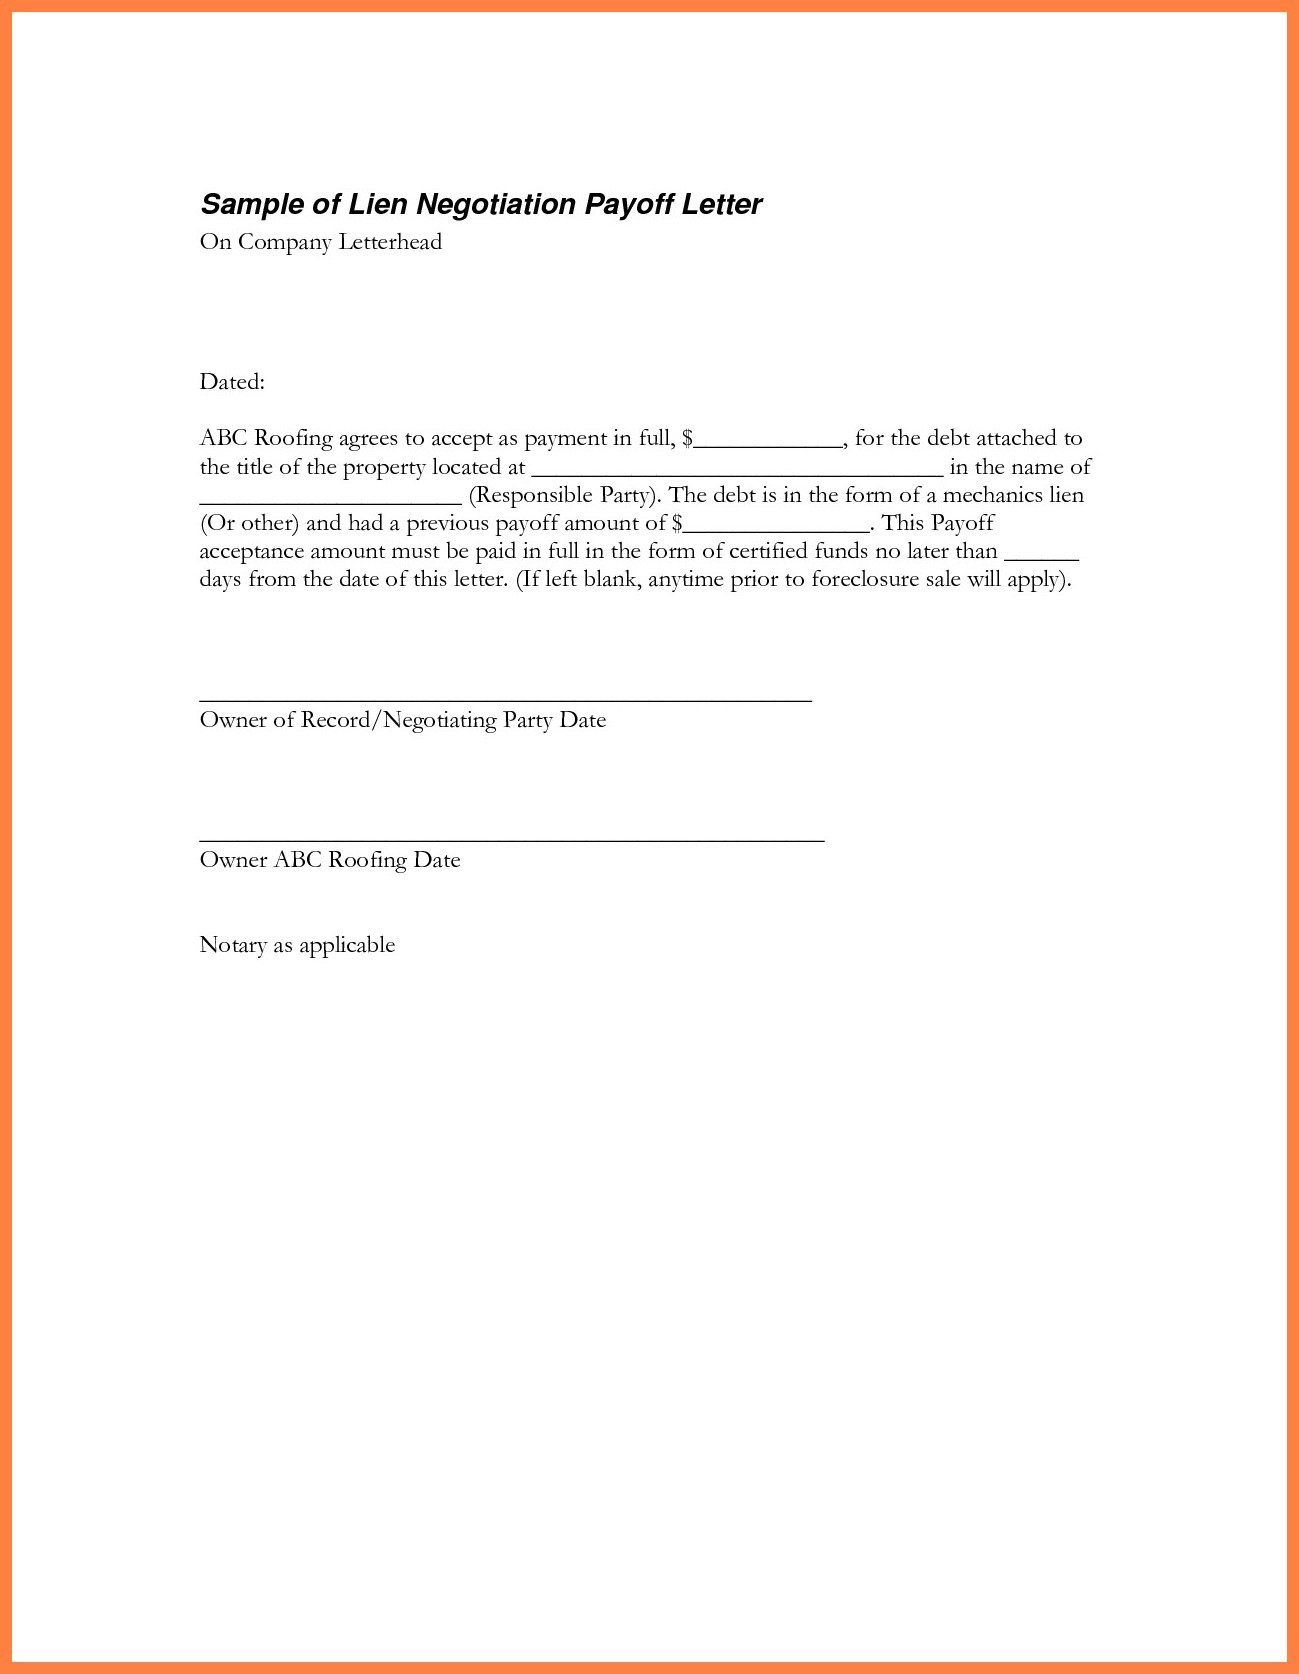 Mortgage Payoff Letter Template - Inspiration 9 Best Sample Loan Payoff Letter form Loan Payoff